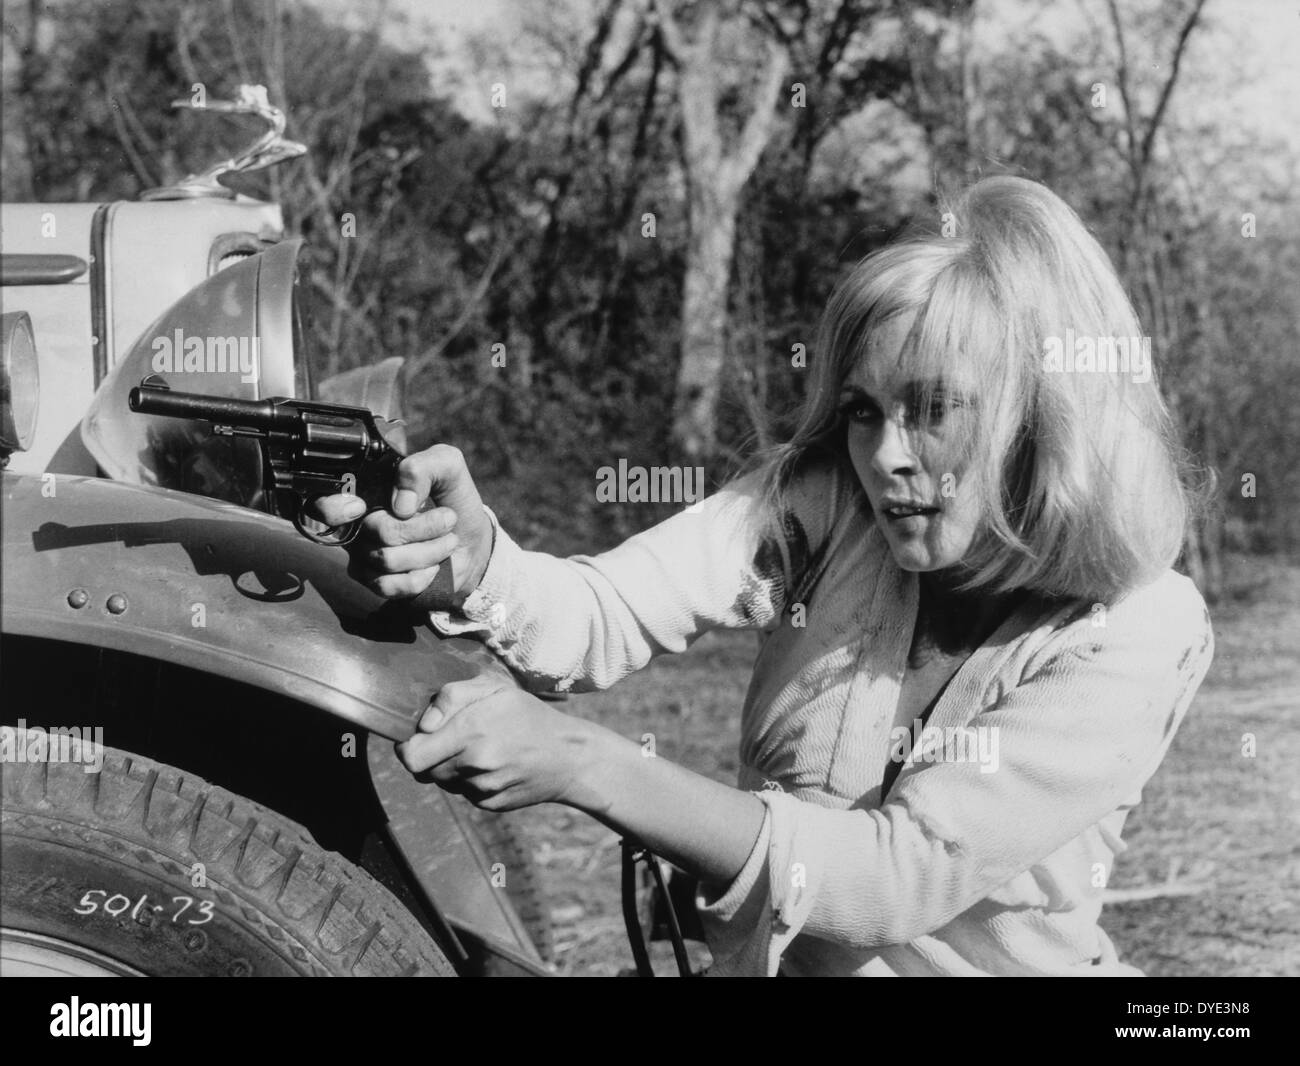 Faye Dunaway, on-set of the Film, 'Bonnie and Clyde', 1967 - Stock Image